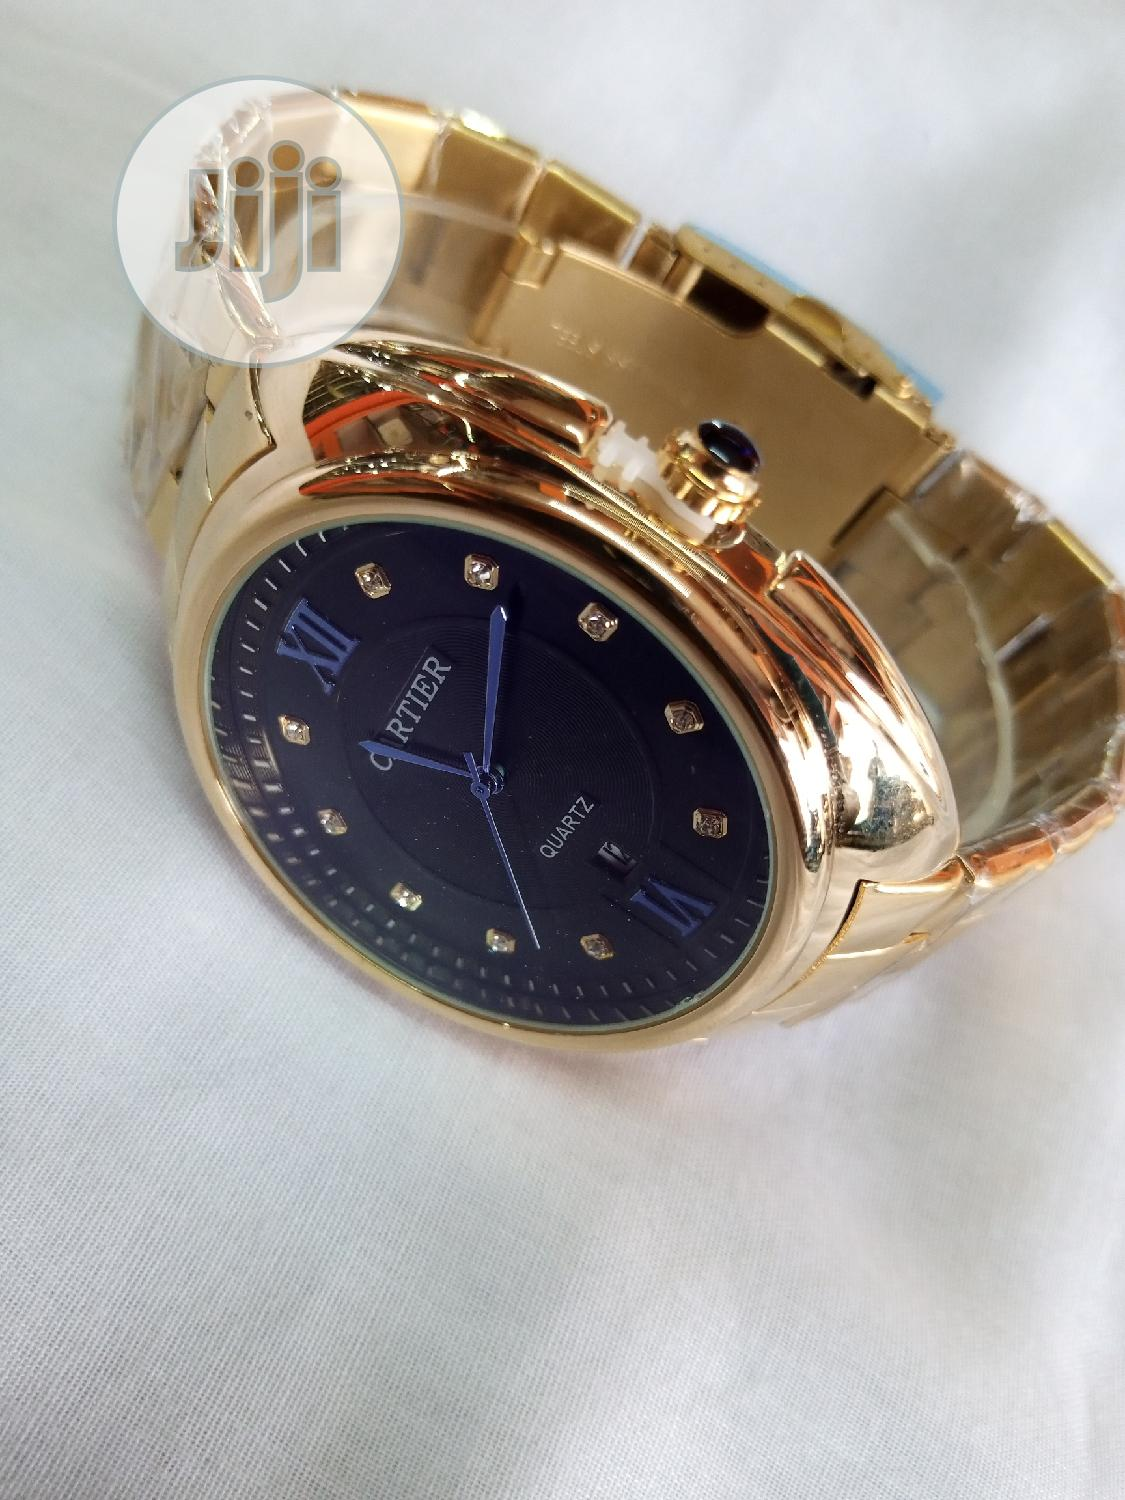 Cartier Wrist Watch | Watches for sale in Ibadan, Oyo State, Nigeria